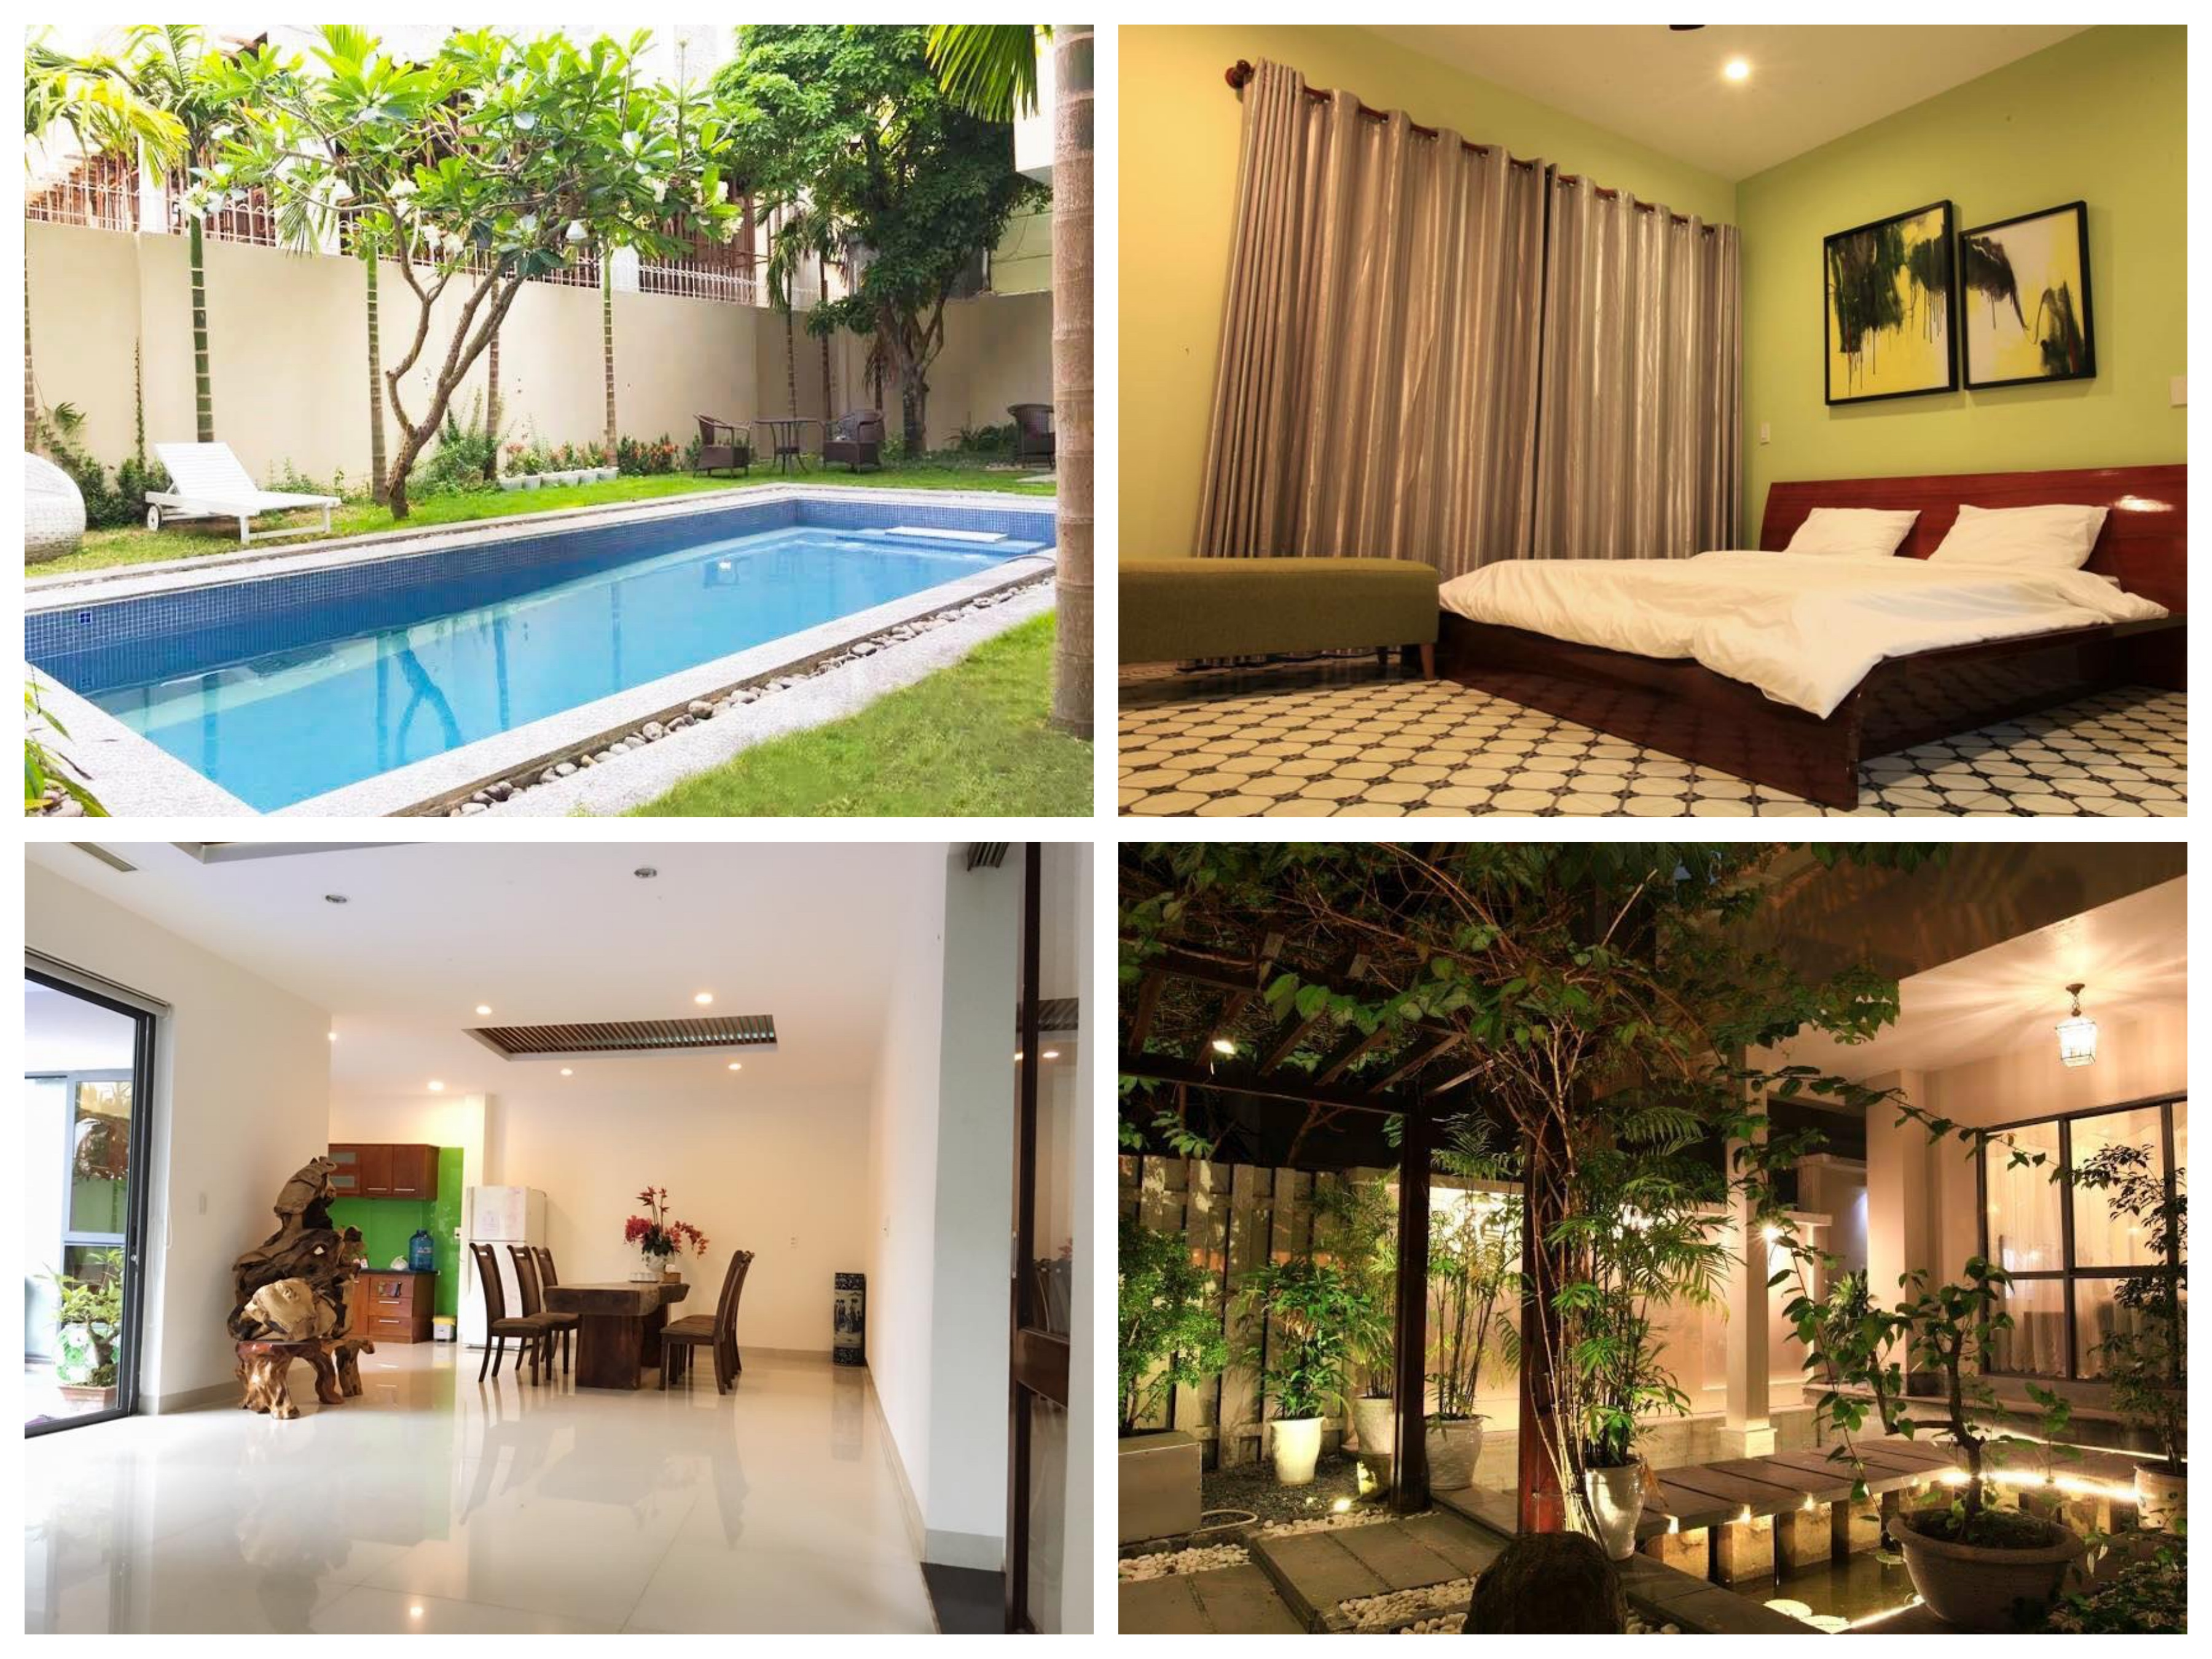 The beautiful 5 bedroom villa with a swimming pool in An Thuong area